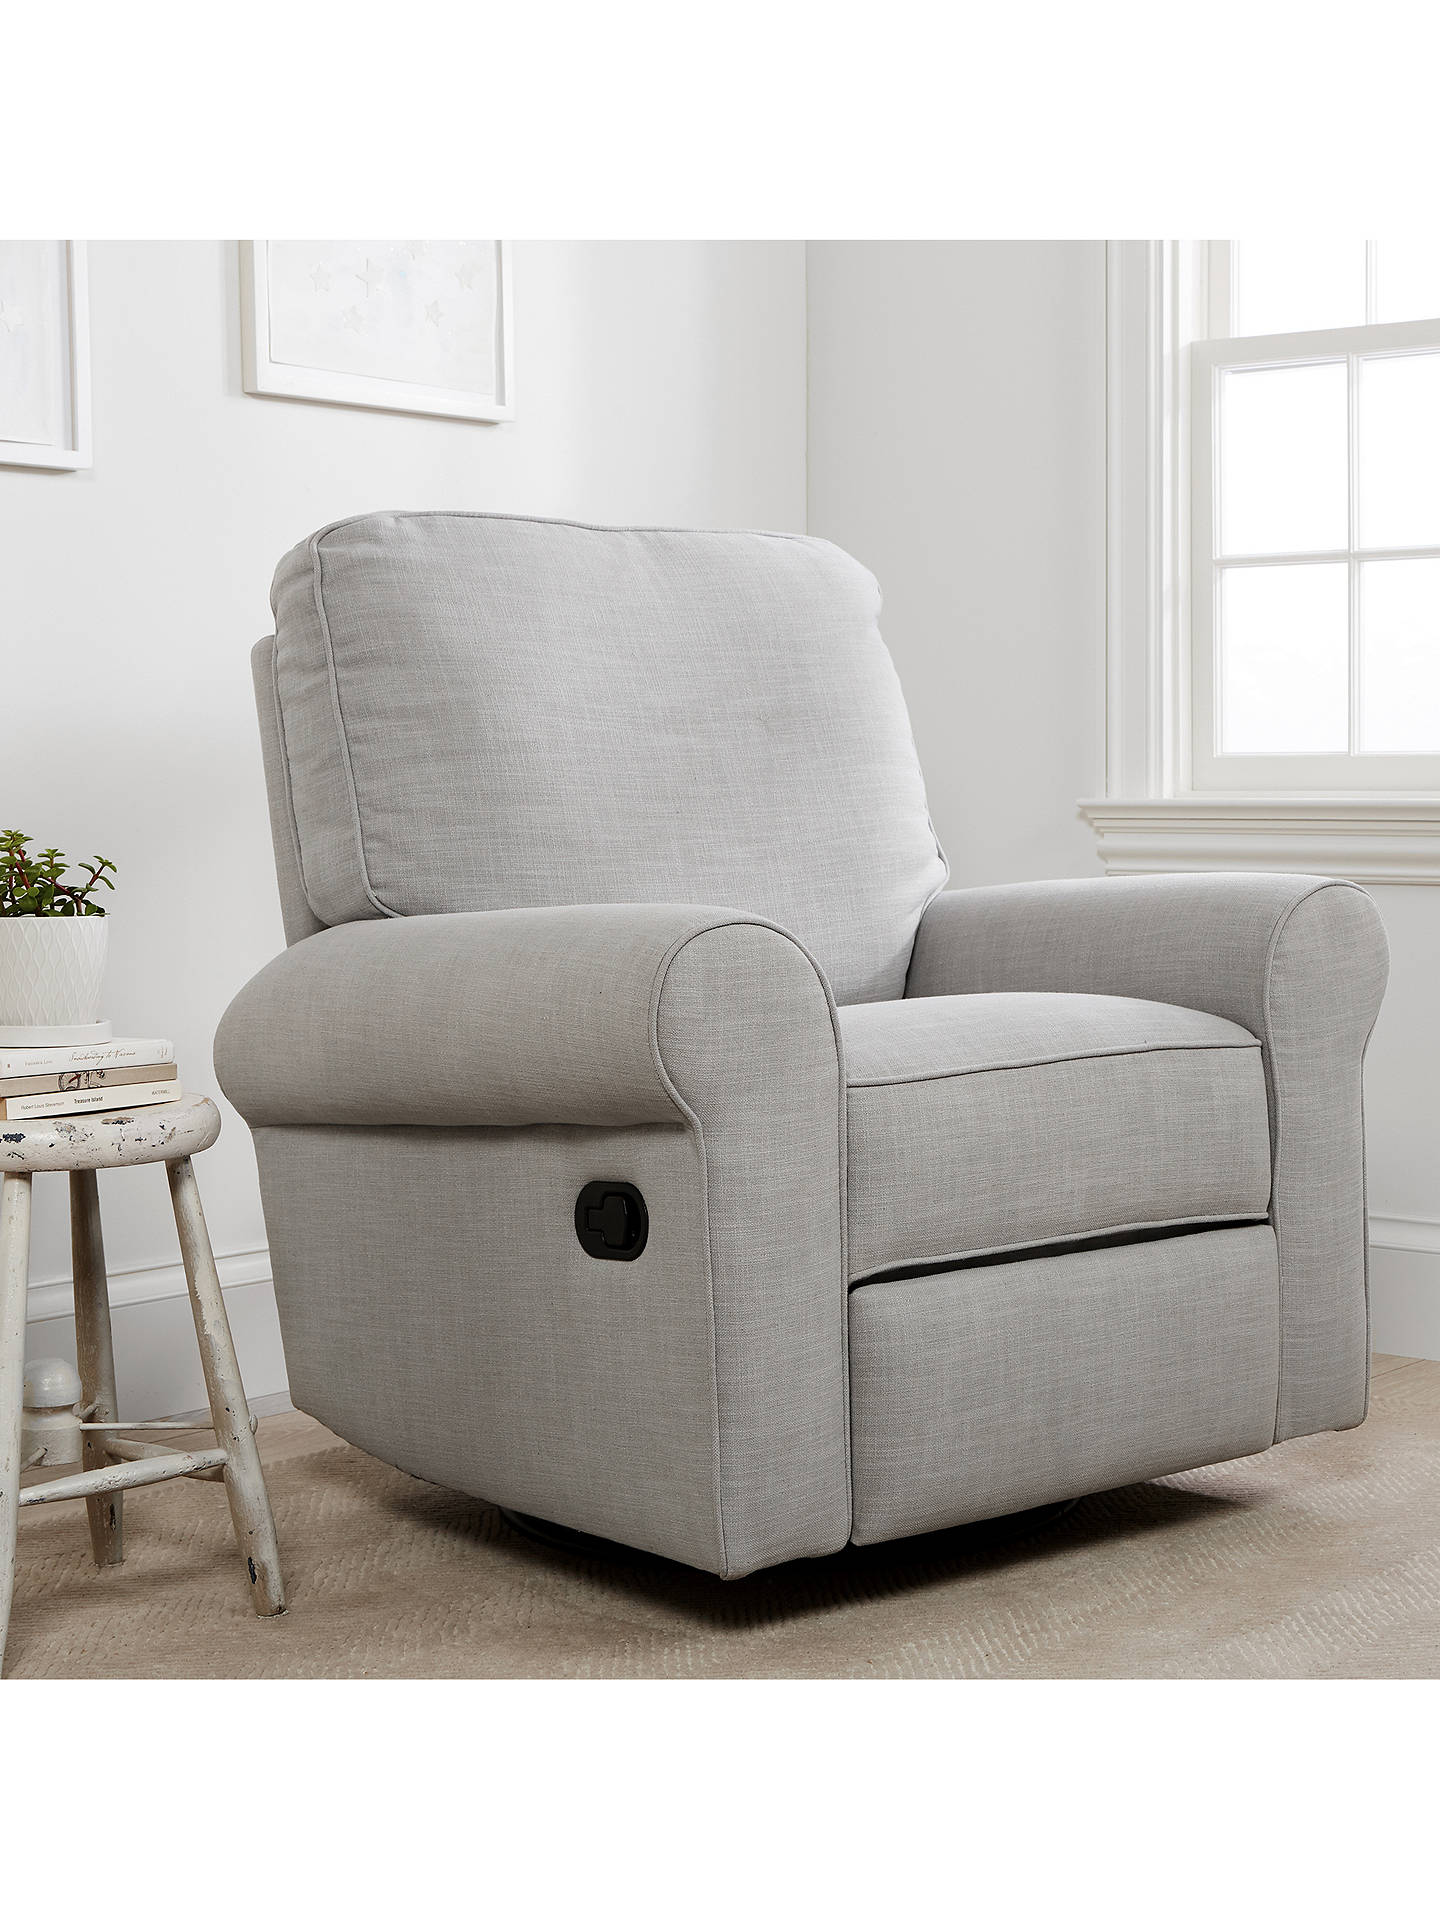 Astonishing Pottery Barn Kids Comfort Swivel Reclining Glider Nursing Chair Grey Pabps2019 Chair Design Images Pabps2019Com